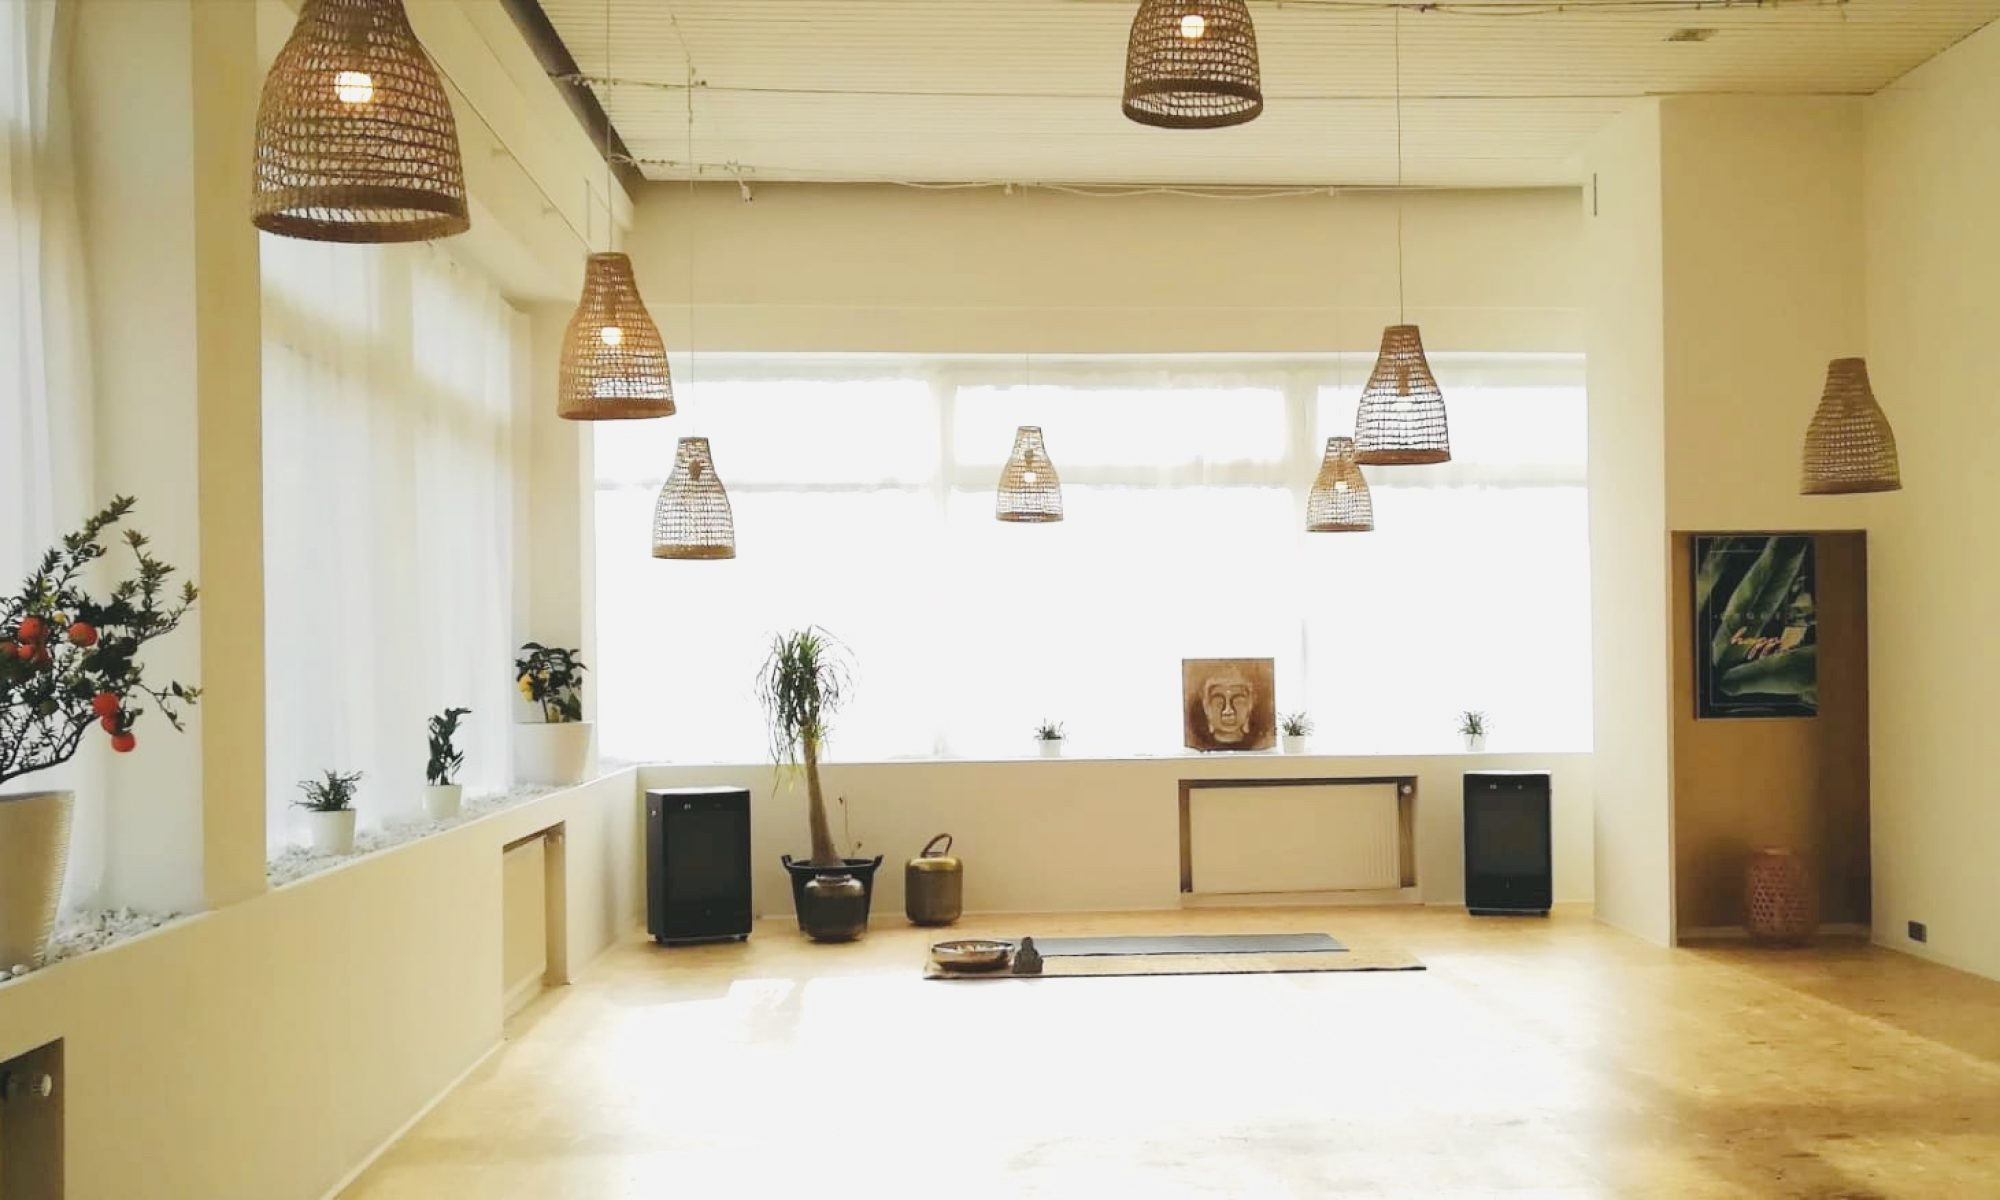 Studio 108 - Yoga. Wellness. Lifestyle.